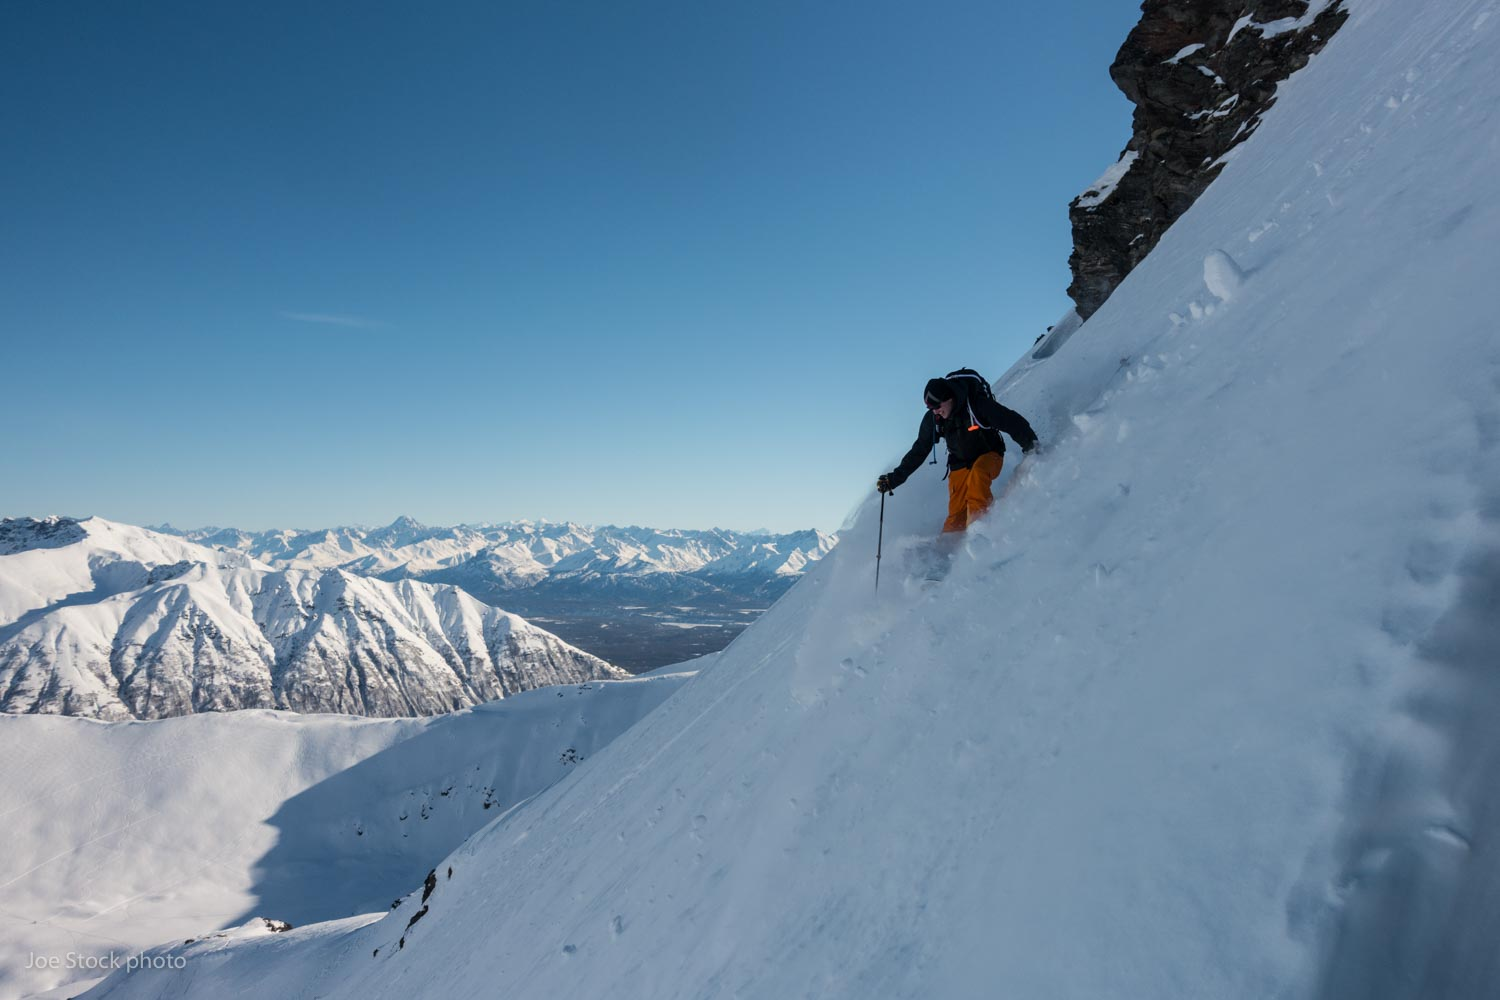 Back home in Alaska skiing with Scott Rowley at Hatcher Pass. Alaska still has the best skiing on earth.